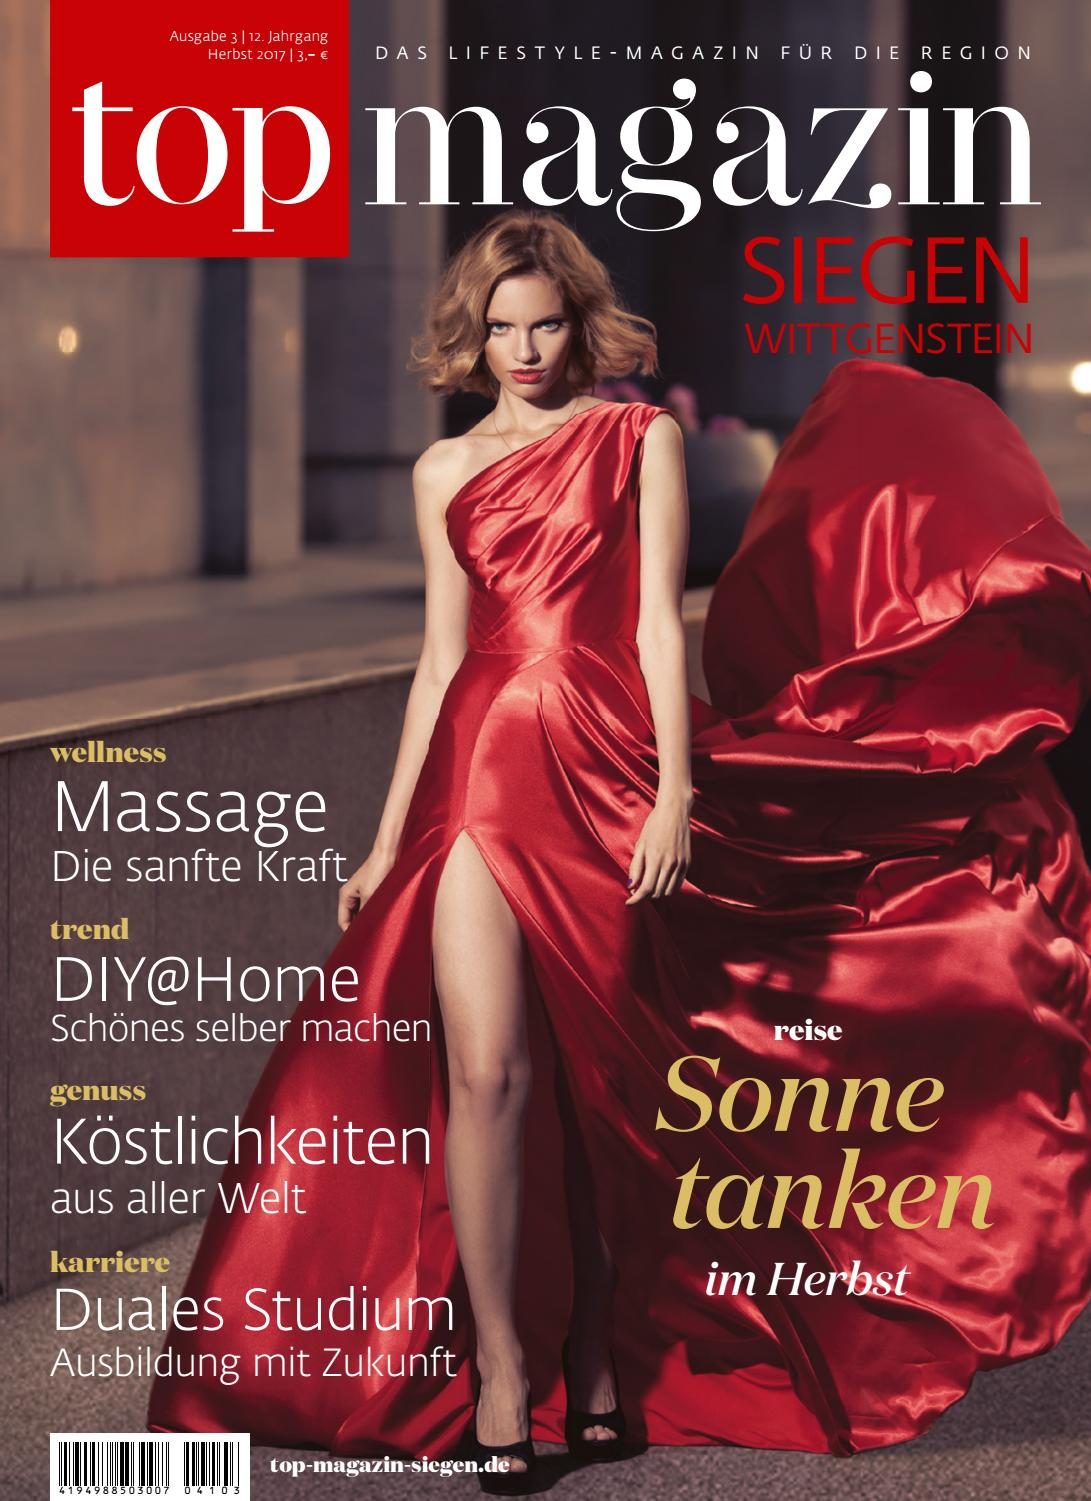 Badezimmer Renovieren Siegen Top Magazin Siegen Wittgenstein Herbst 2017 By Top Magazin Issuu